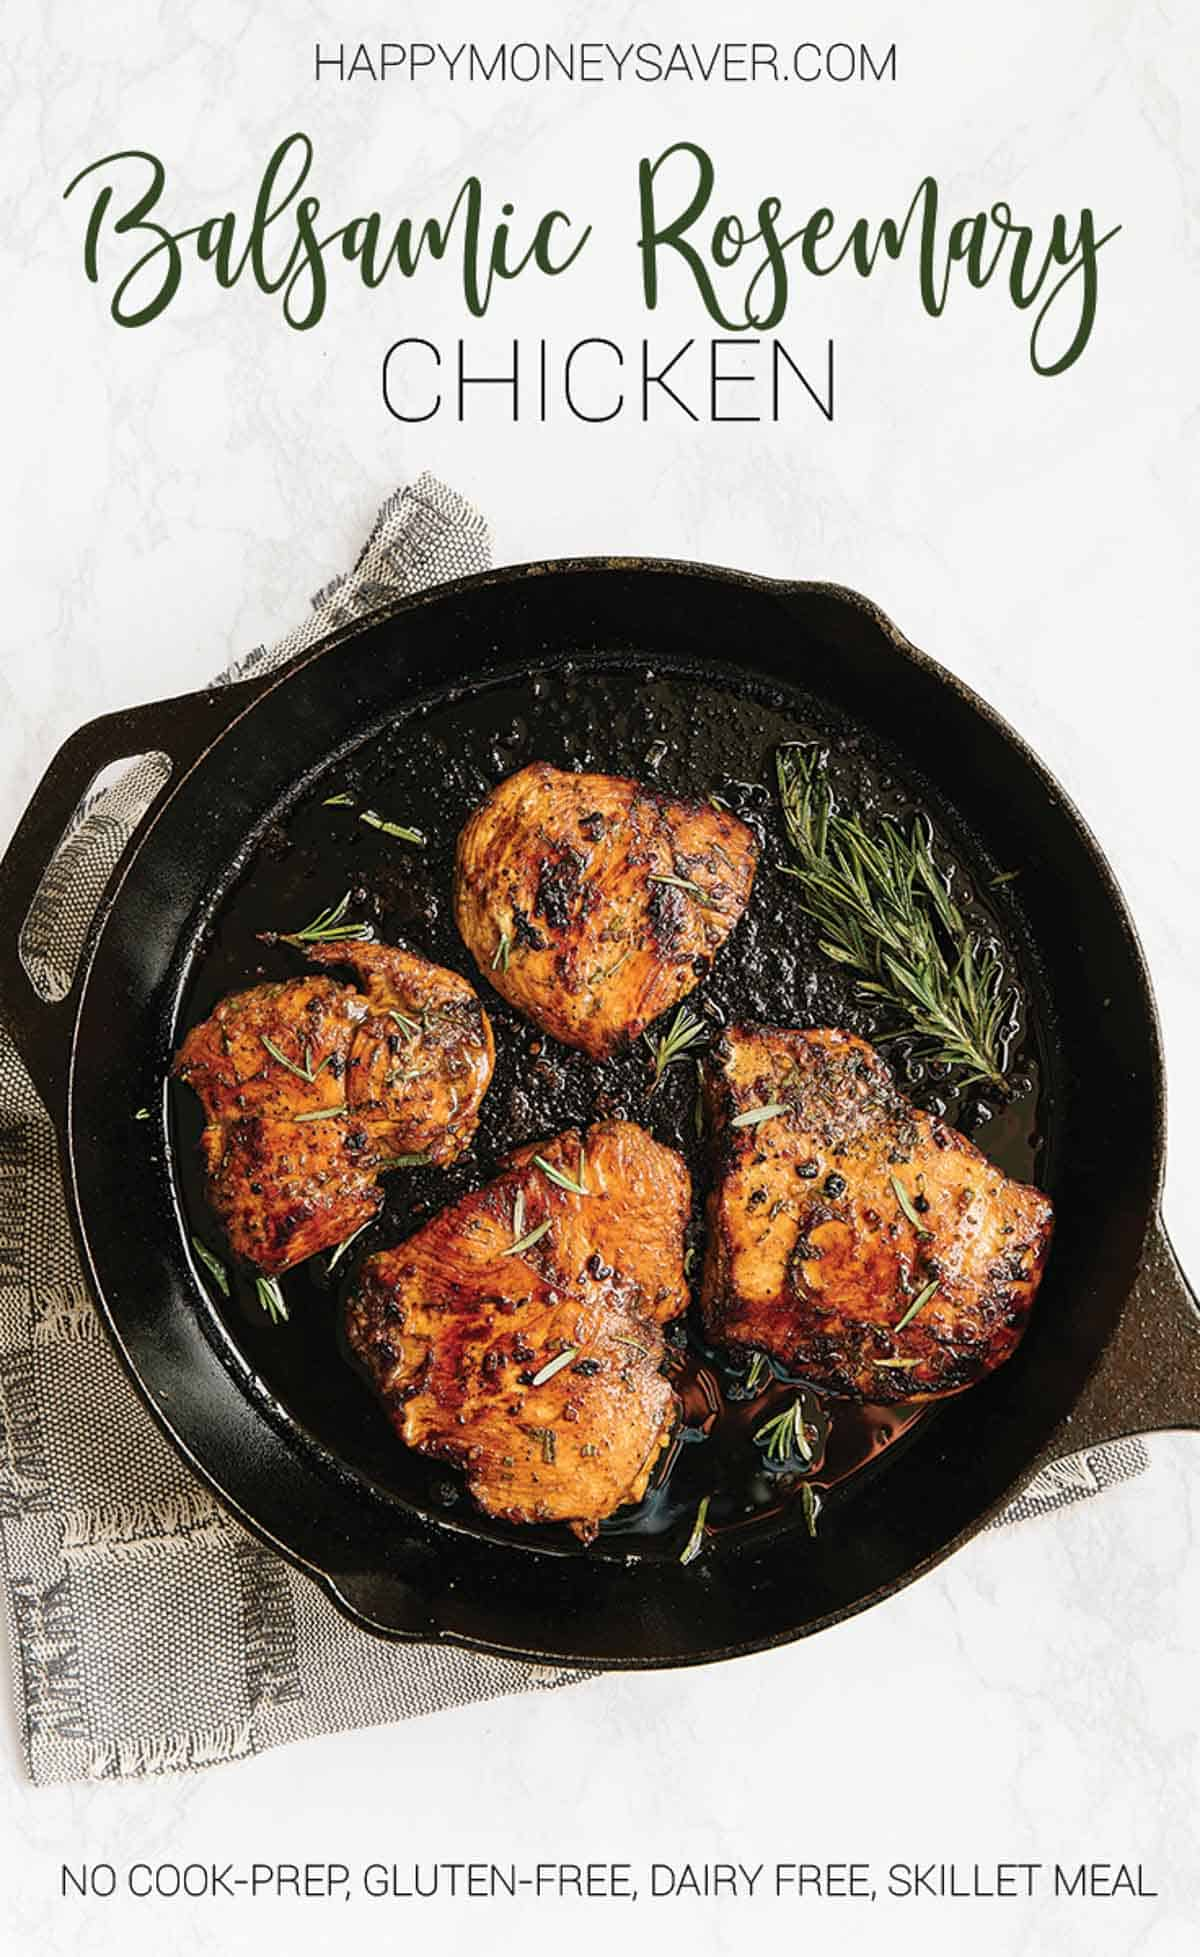 Balsamic Rosemary Chicken cooked in a skillet with fresh rosemary sprigs.